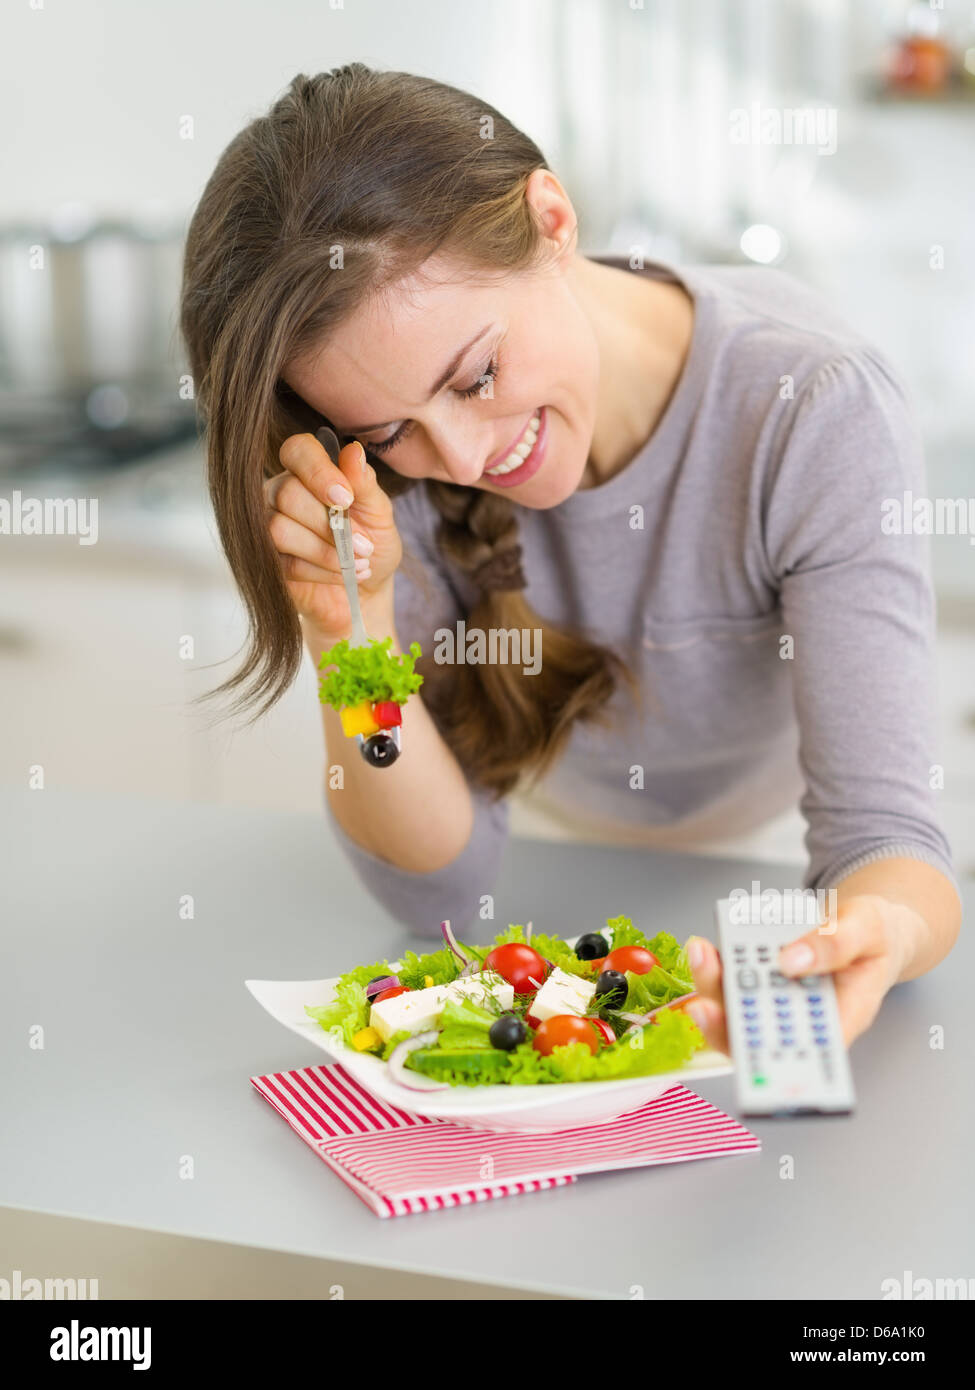 Laughing young woman eating salad and watching tv in kitchen - Stock Image